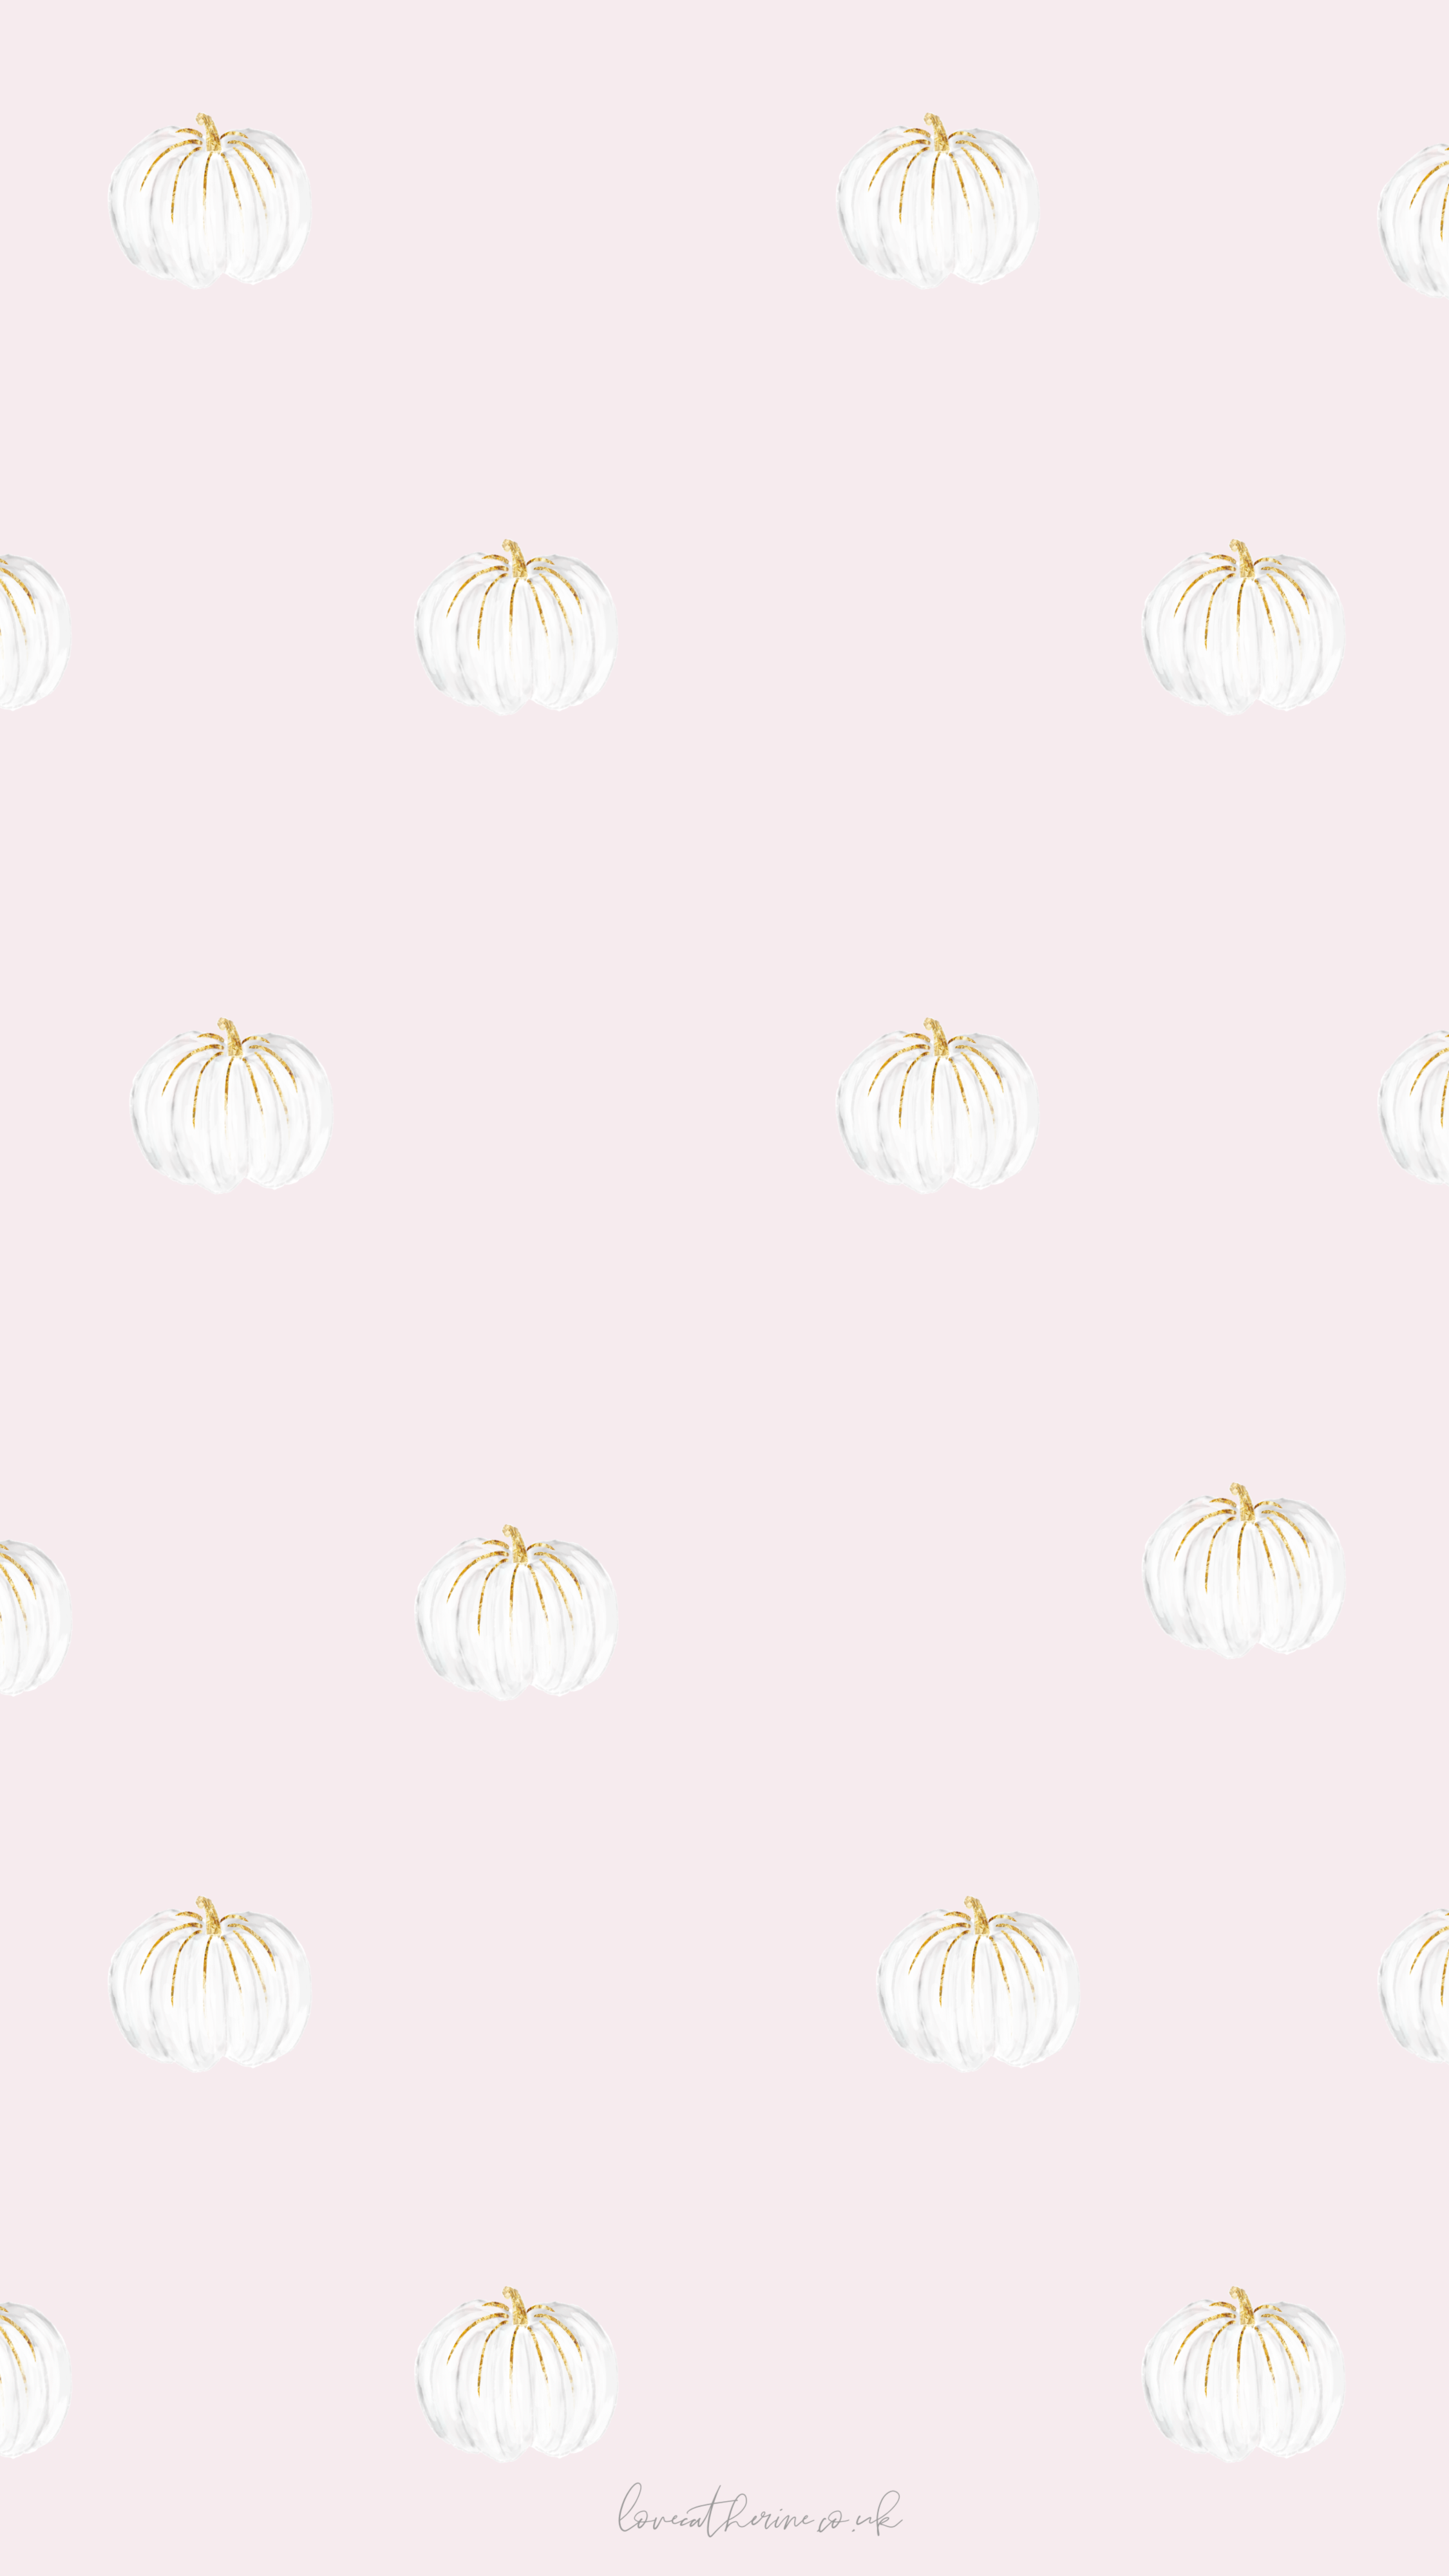 Free Enchanting iPhone Wallpapers For Autumn